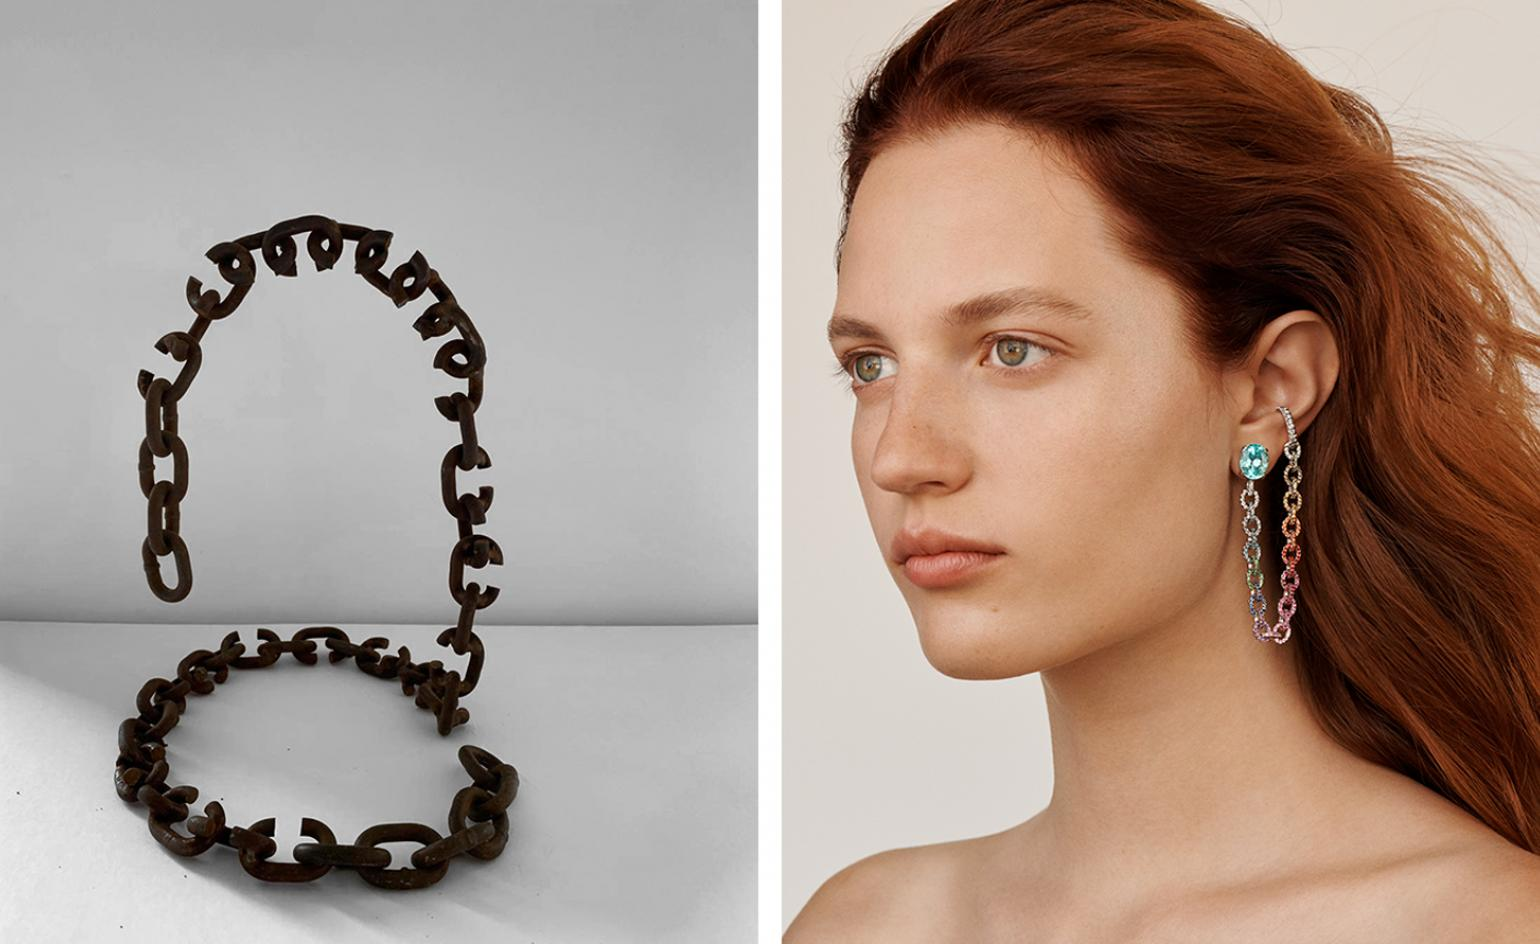 Chain reaction: sculpture and <b>je...